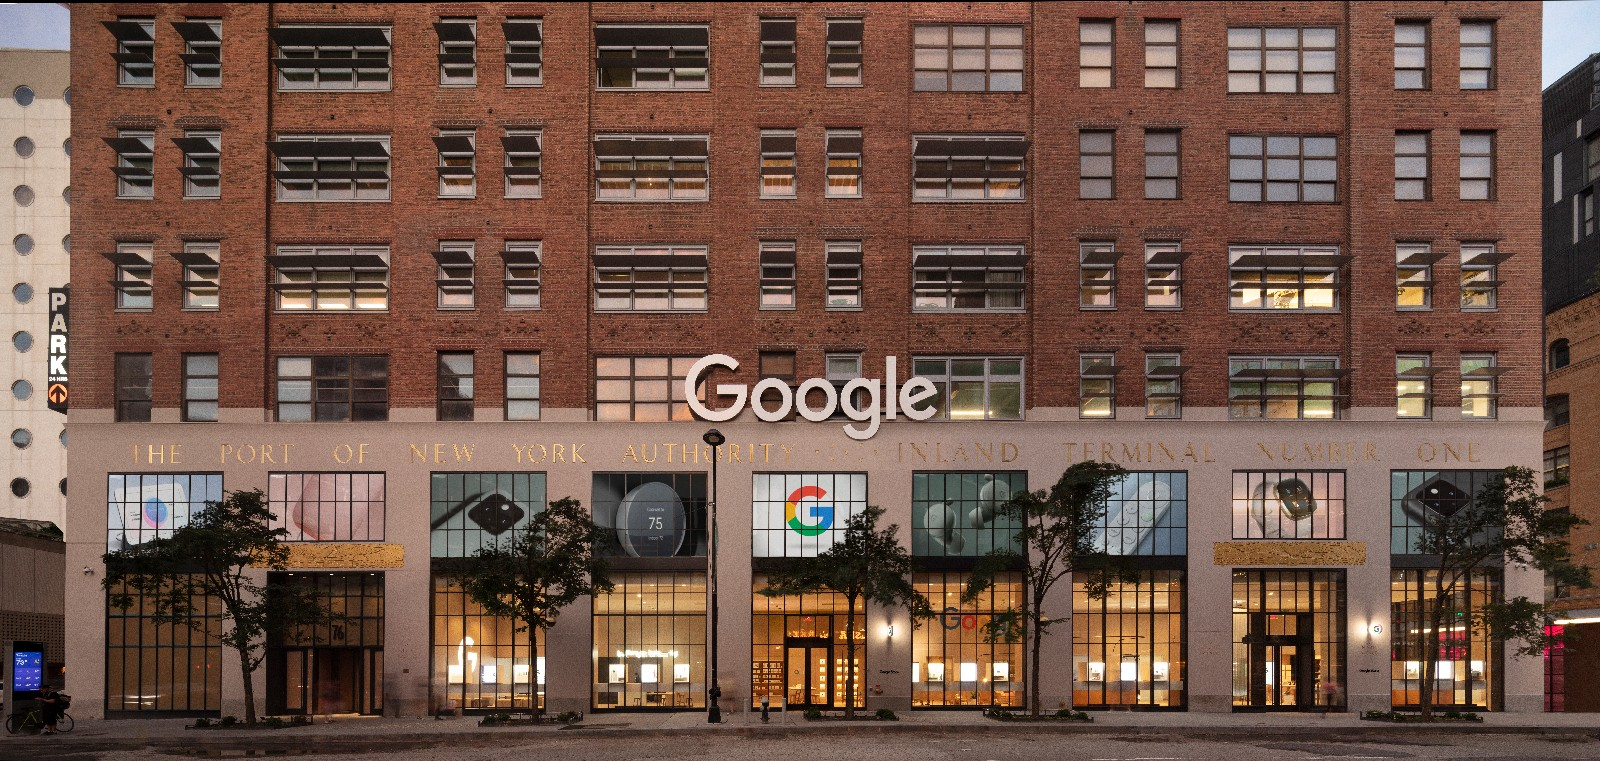 <p>Google Store Chelsea. Exterior facade wide shot showing entire block, straight on.</p>